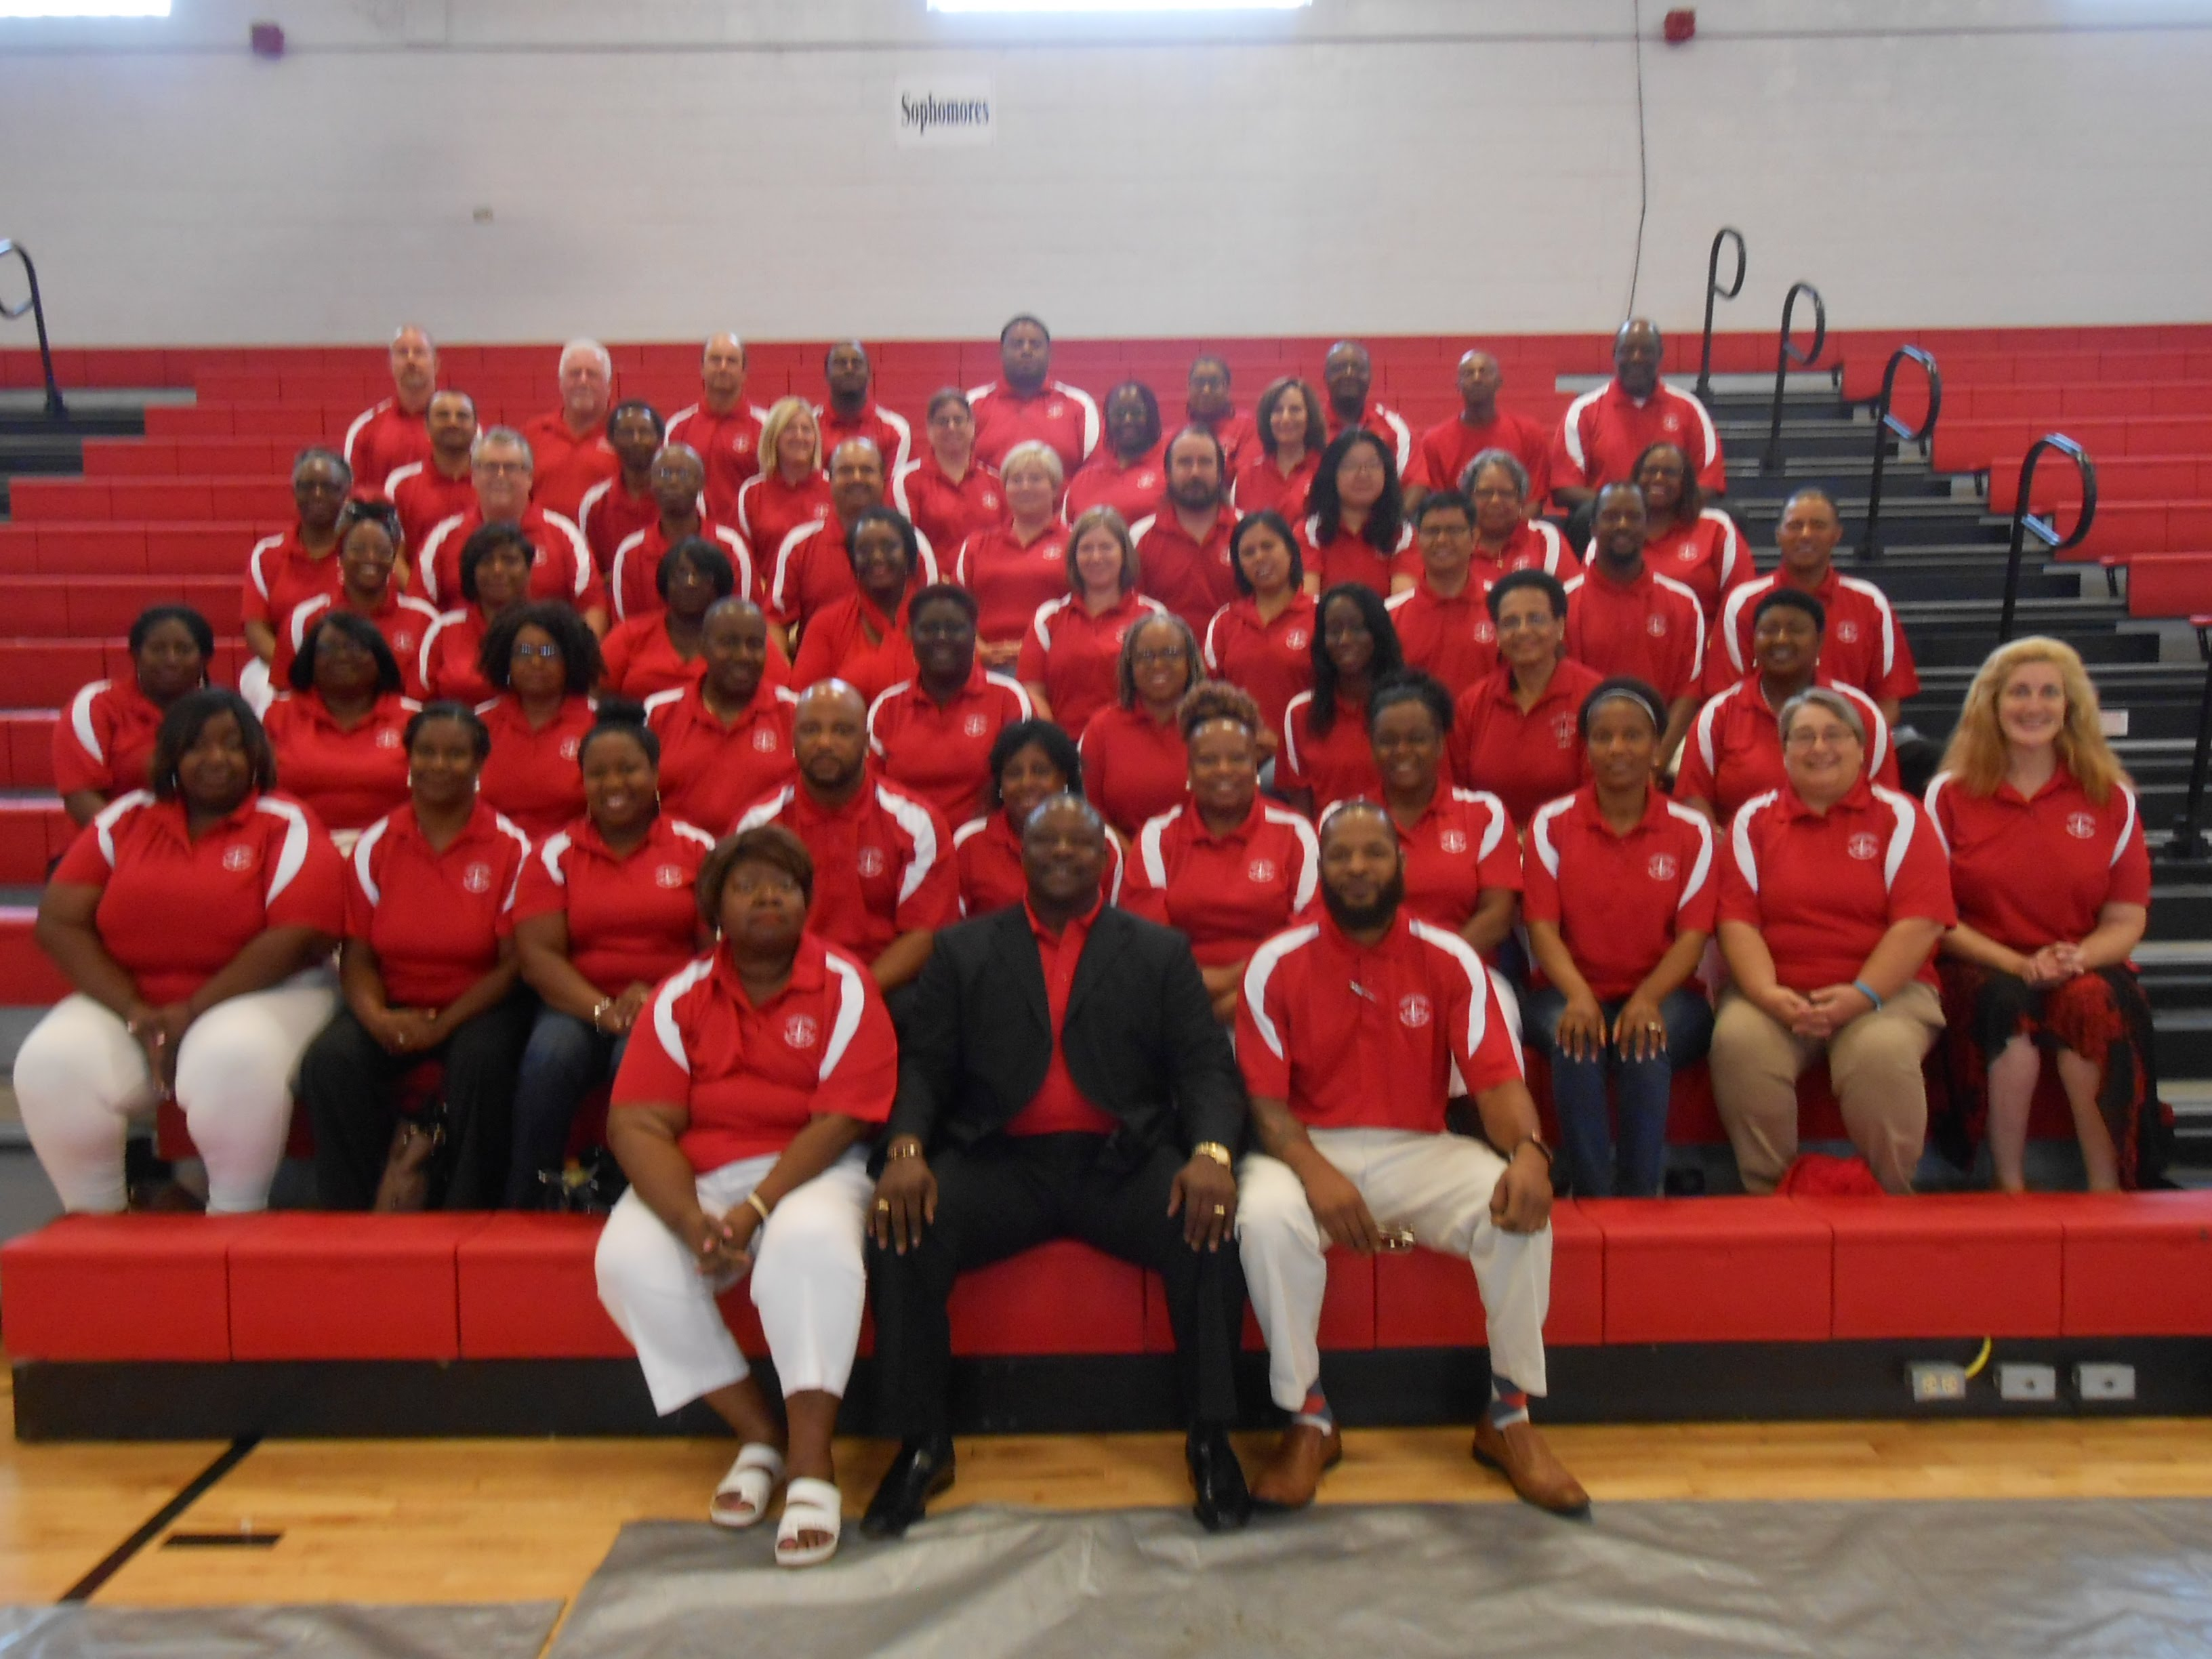 34c5a18a71 The mission of Calhoun County High School, in unity with parents and  community, is to provide an environment conducive to learning that  challenges all ...